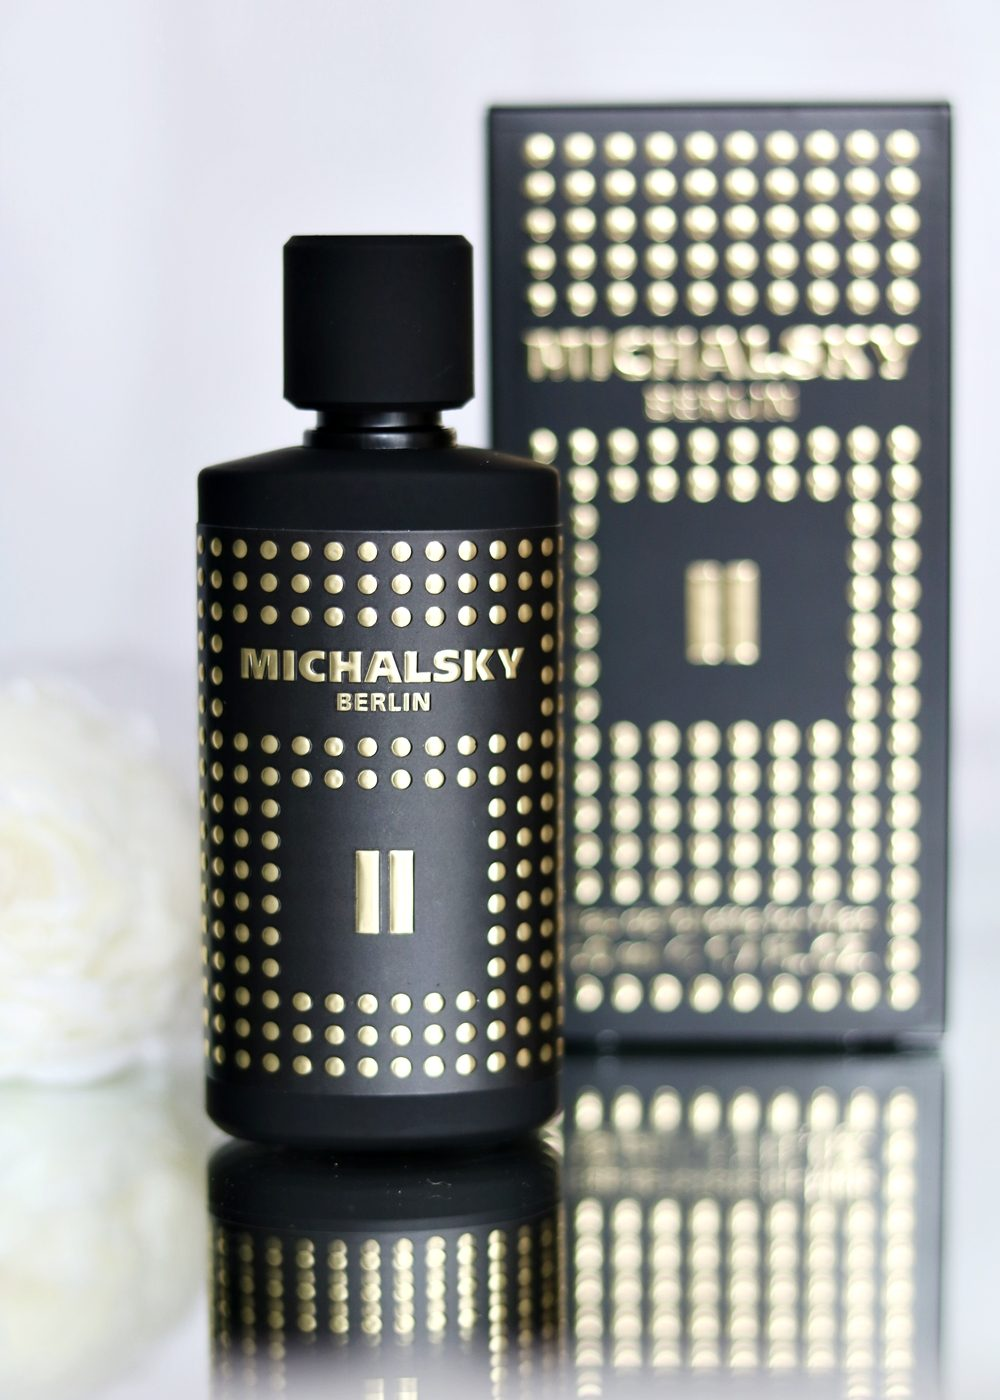 Michael Michalsky Parfum Herrenduft Berlin 2 (1)